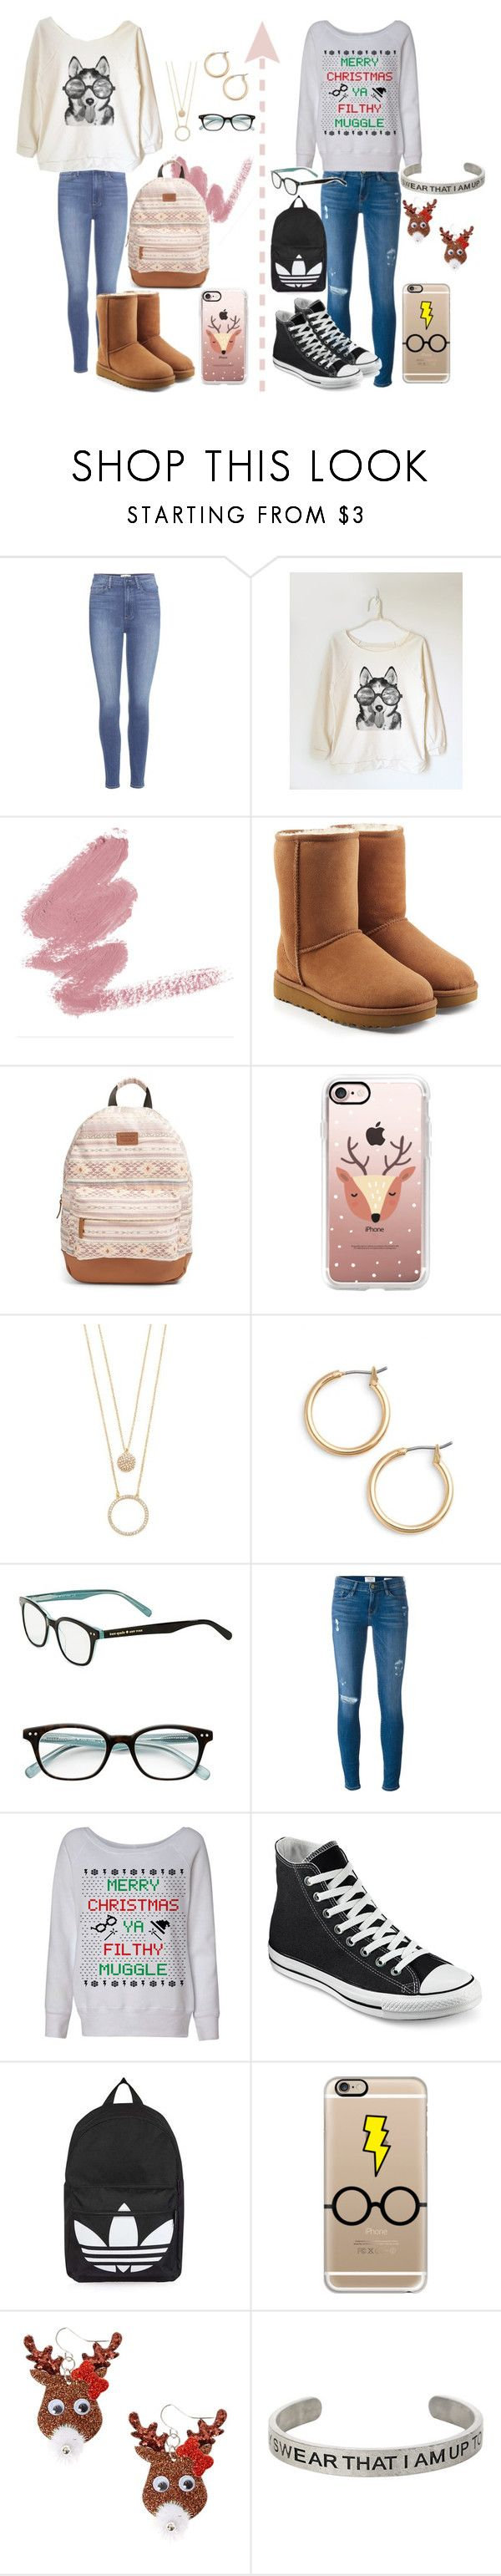 """""""Get To Know Me Day #10 &11"""" by iz-so-kray-kray ❤ liked on Polyvore featuring Paige Denim, UGG, Rip Curl, Casetify, Kate Spade, Nordstrom, Frame, Converse, Topshop and claire's"""